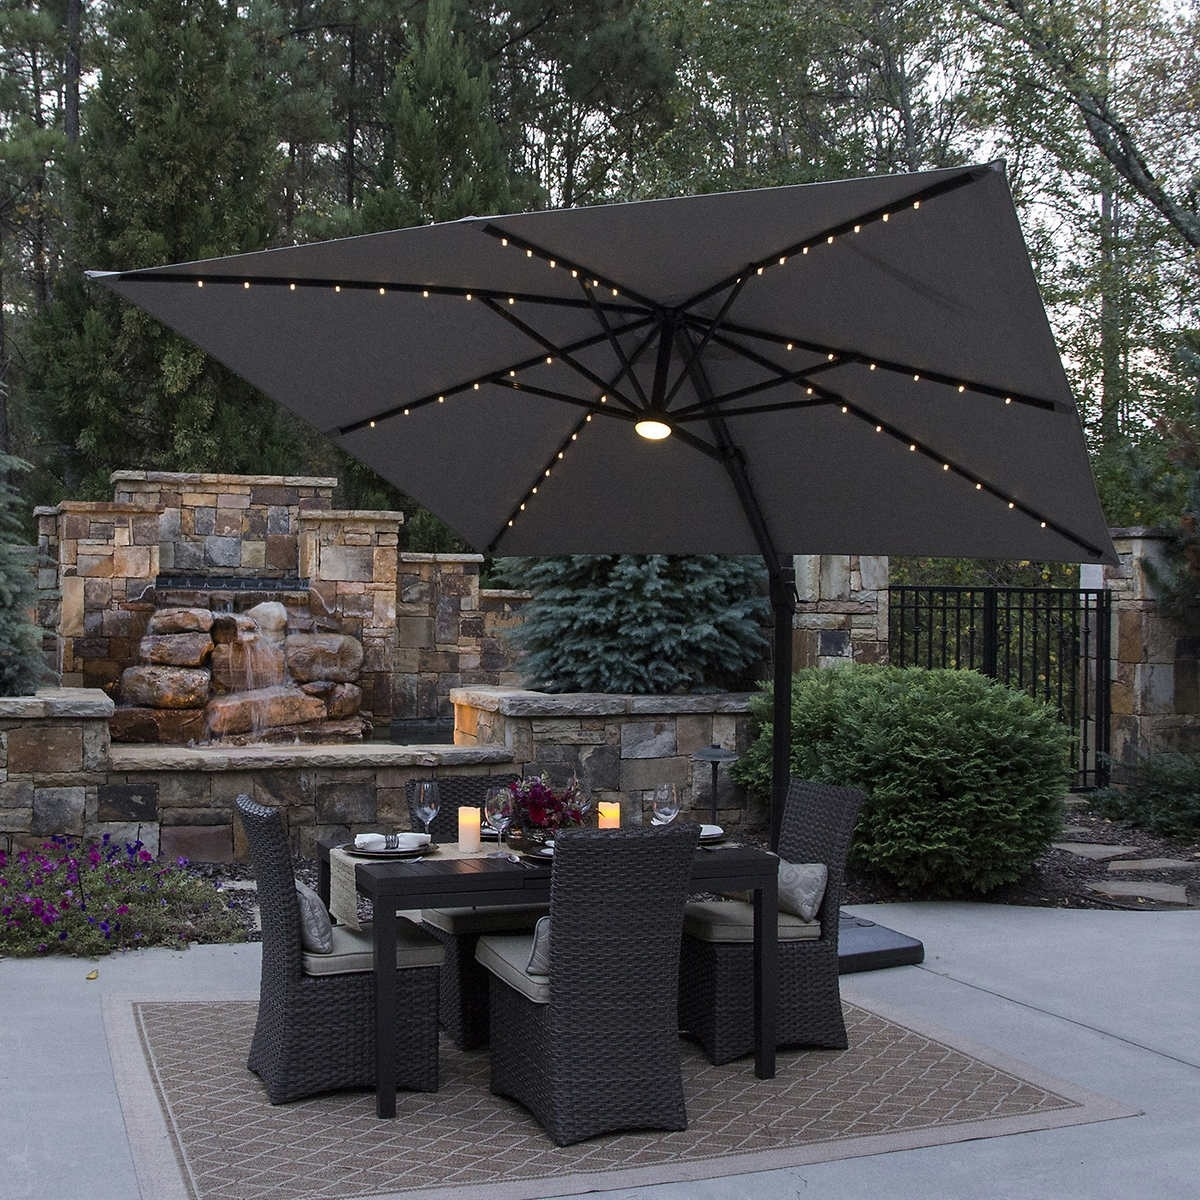 Dark Costco Patio Umbrella : Acvap Homes – Cleaning Costco Patio Regarding Current Costco Cantilever Patio Umbrellas (View 6 of 20)